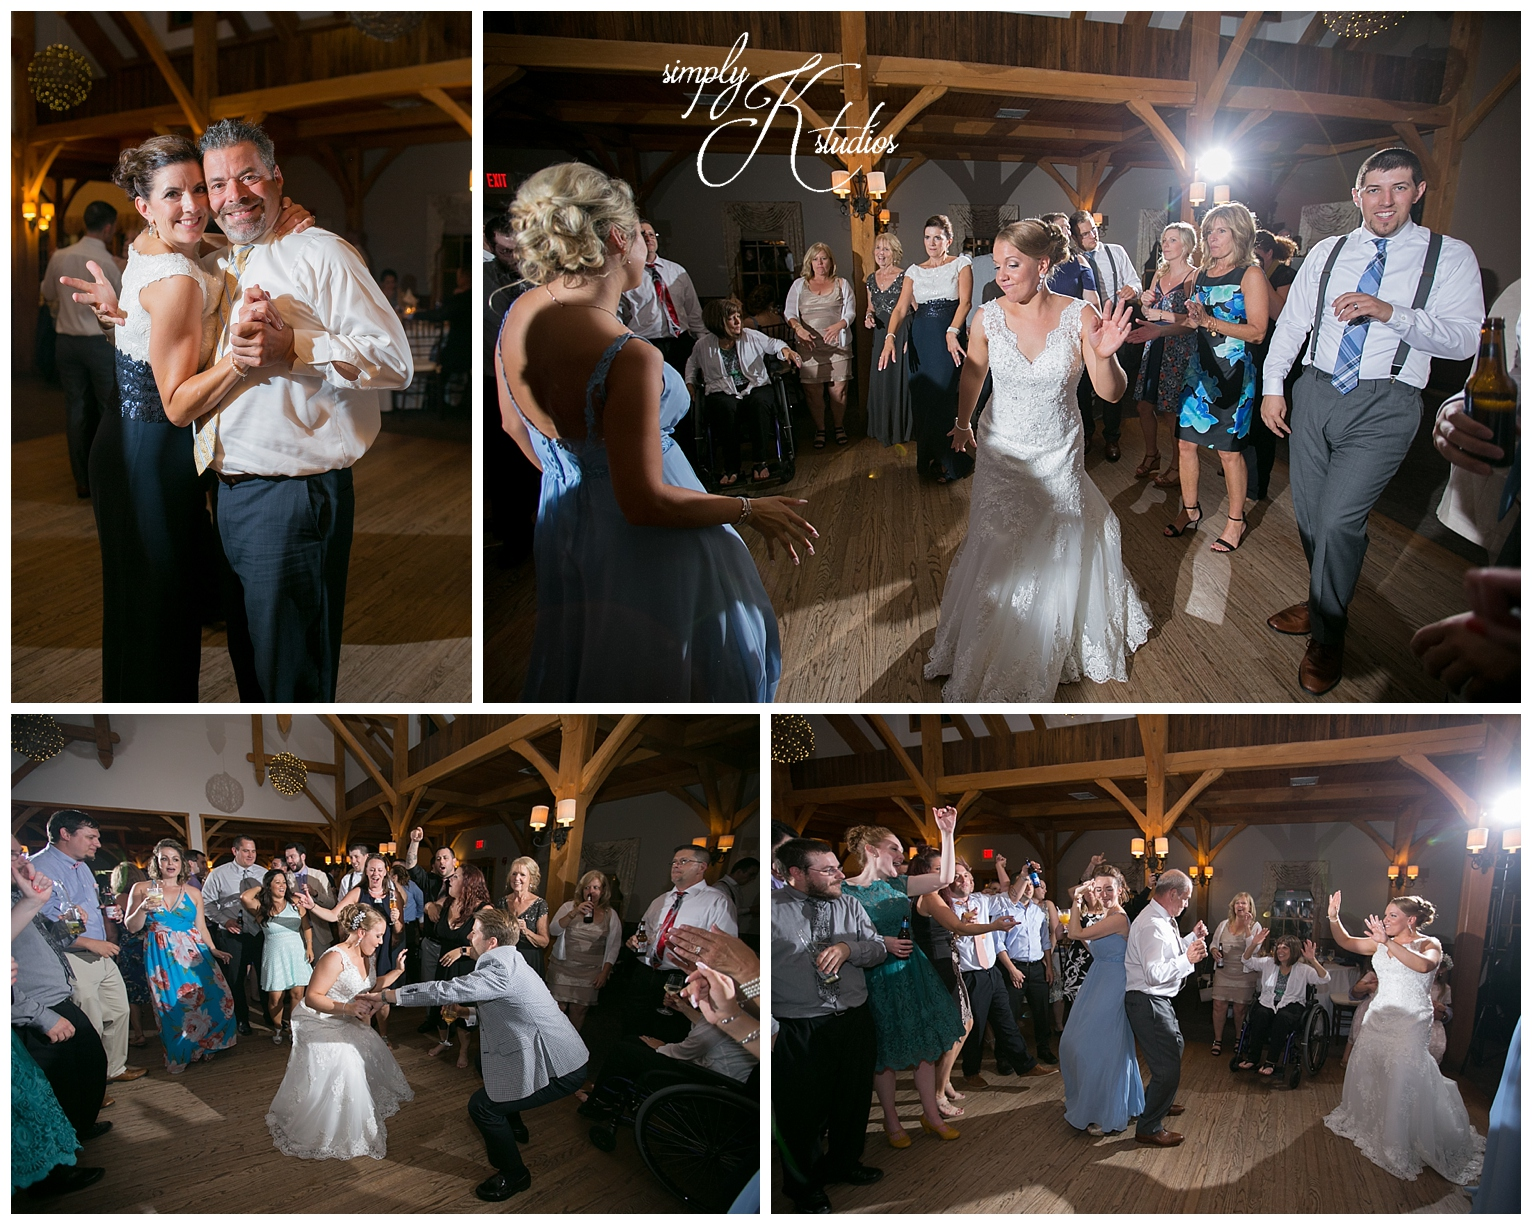 Harrington Farm Wedding Receptions.jpg